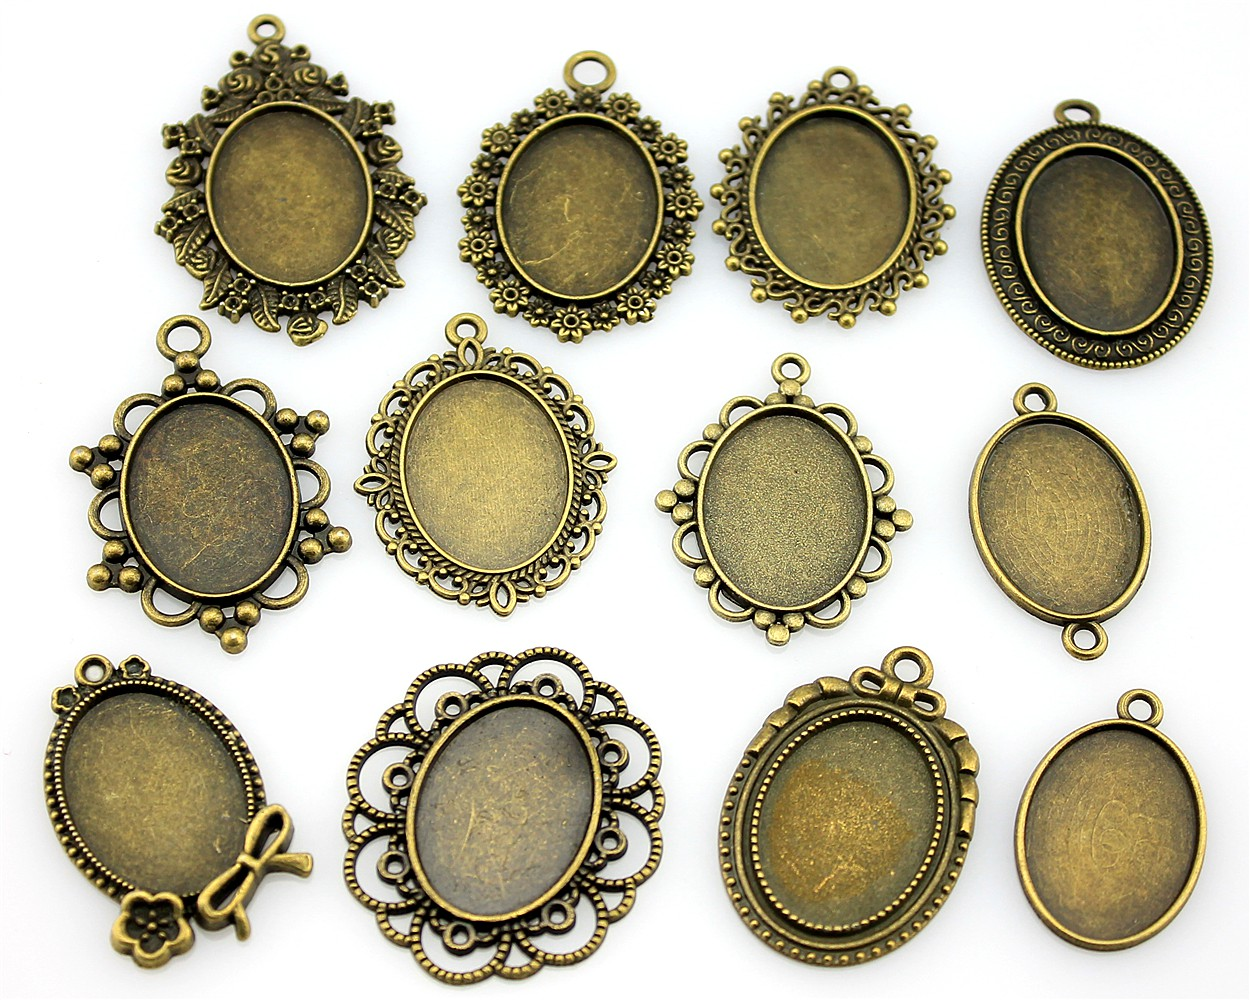 100Gram <font><b>Oval</b></font> <font><b>18x25mm</b></font> Inner Size Mix Designs Antique Silver Color & Antique Bronze Zinc Alloy Cameo <font><b>Cabochon</b></font> Base Setting image